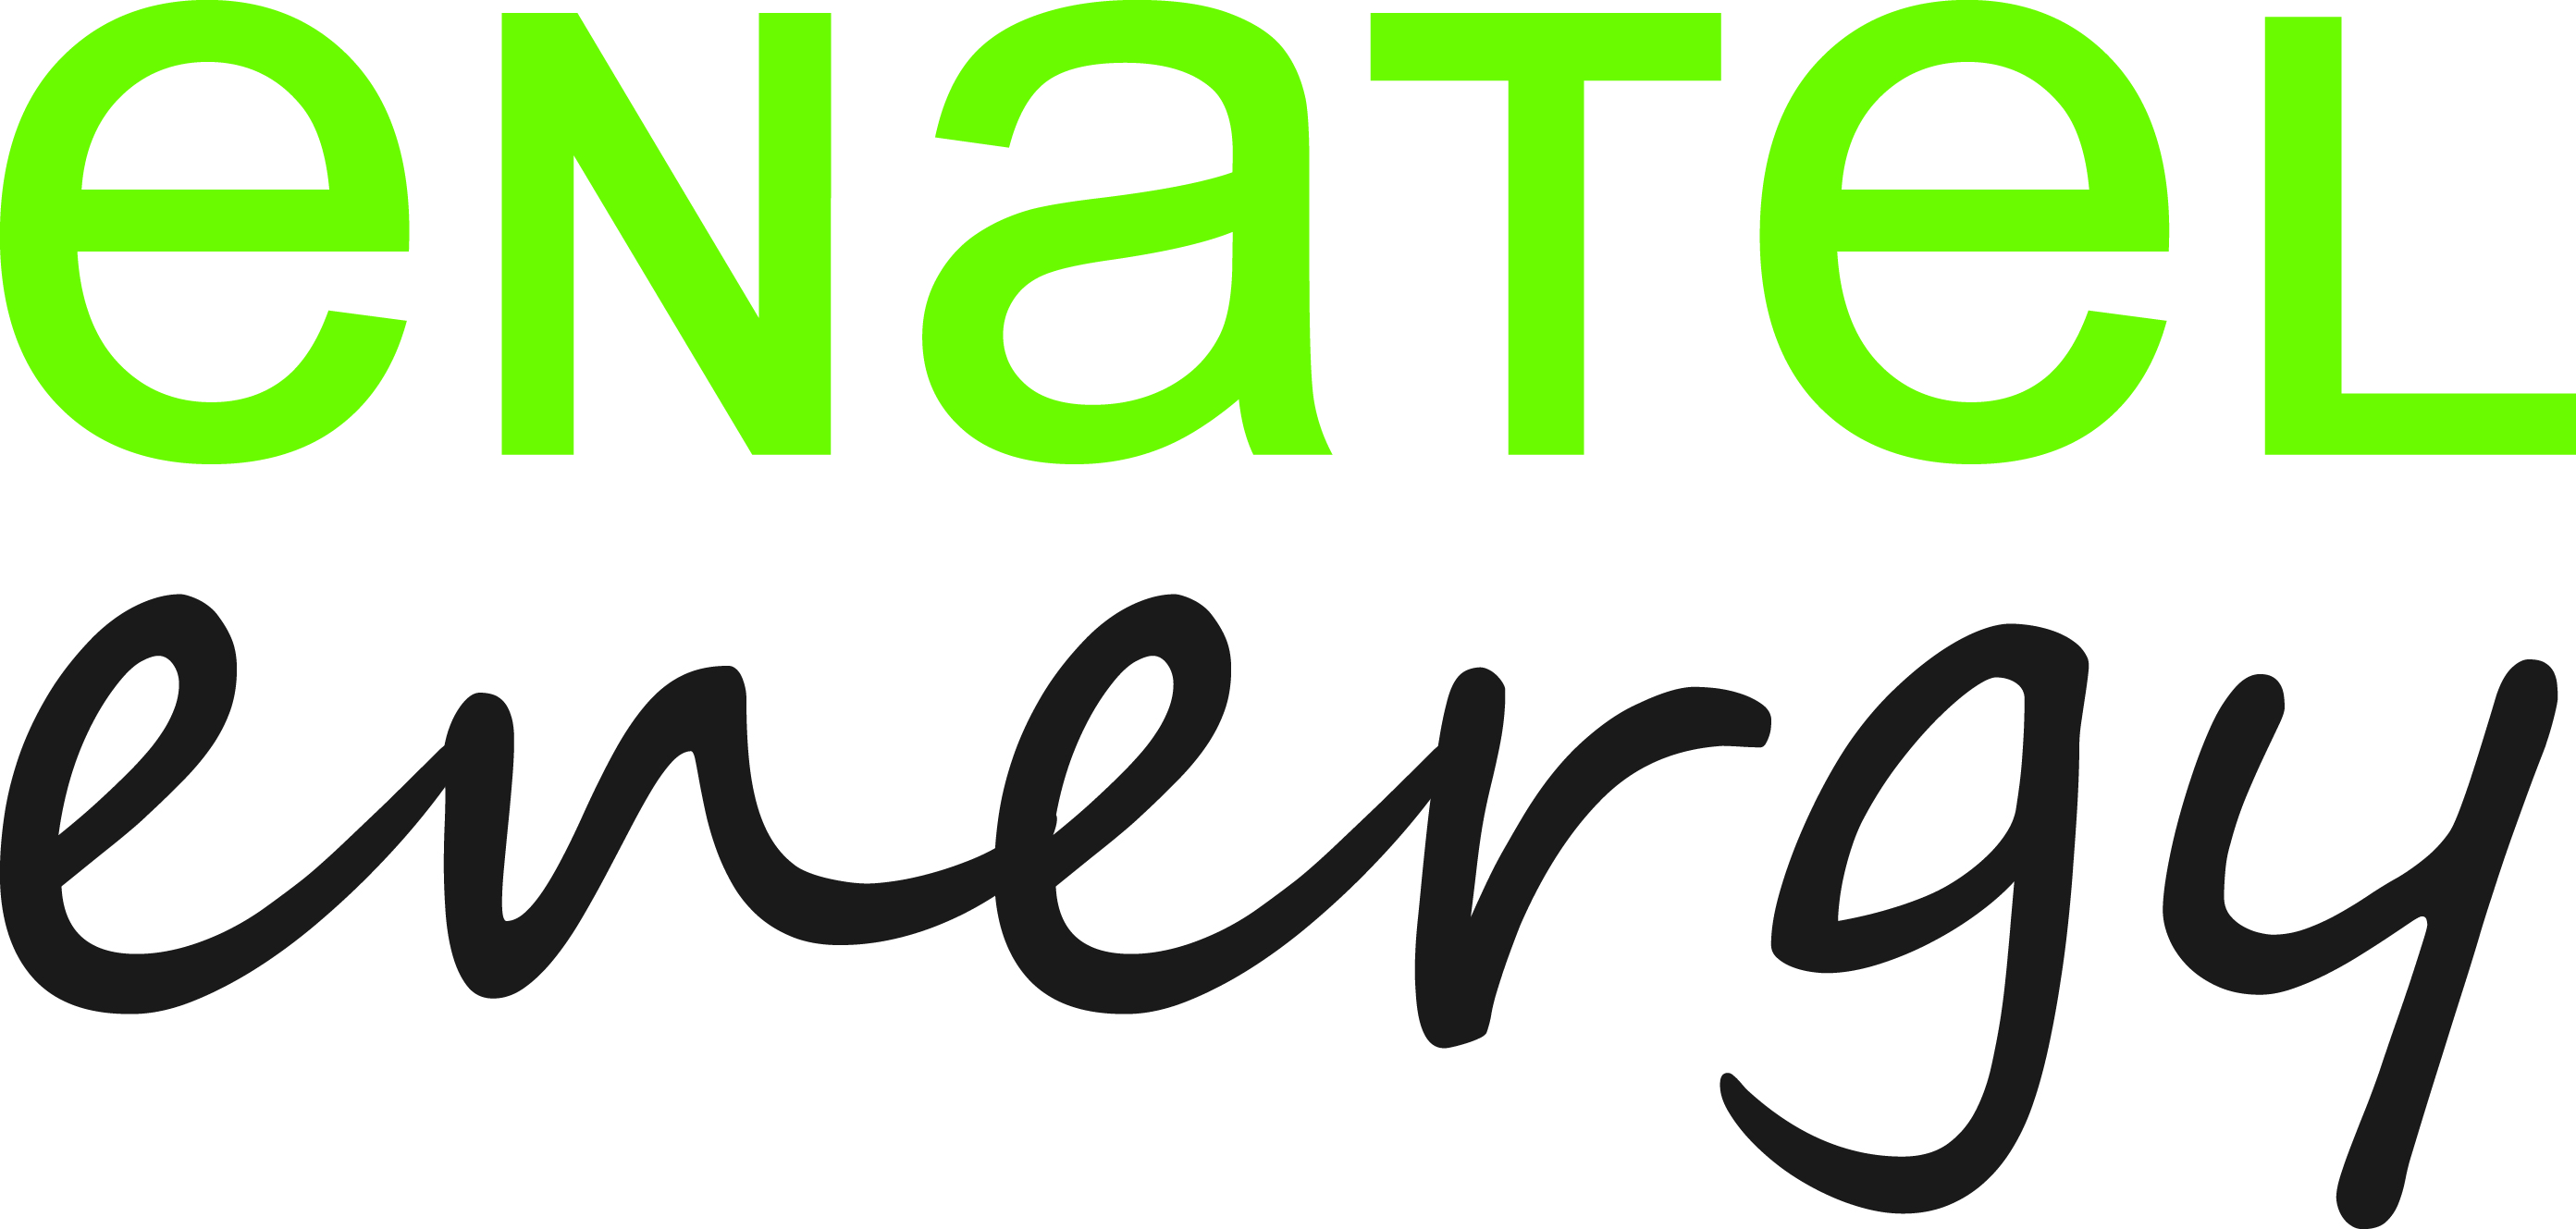 Enatel Energy Logo Coloured